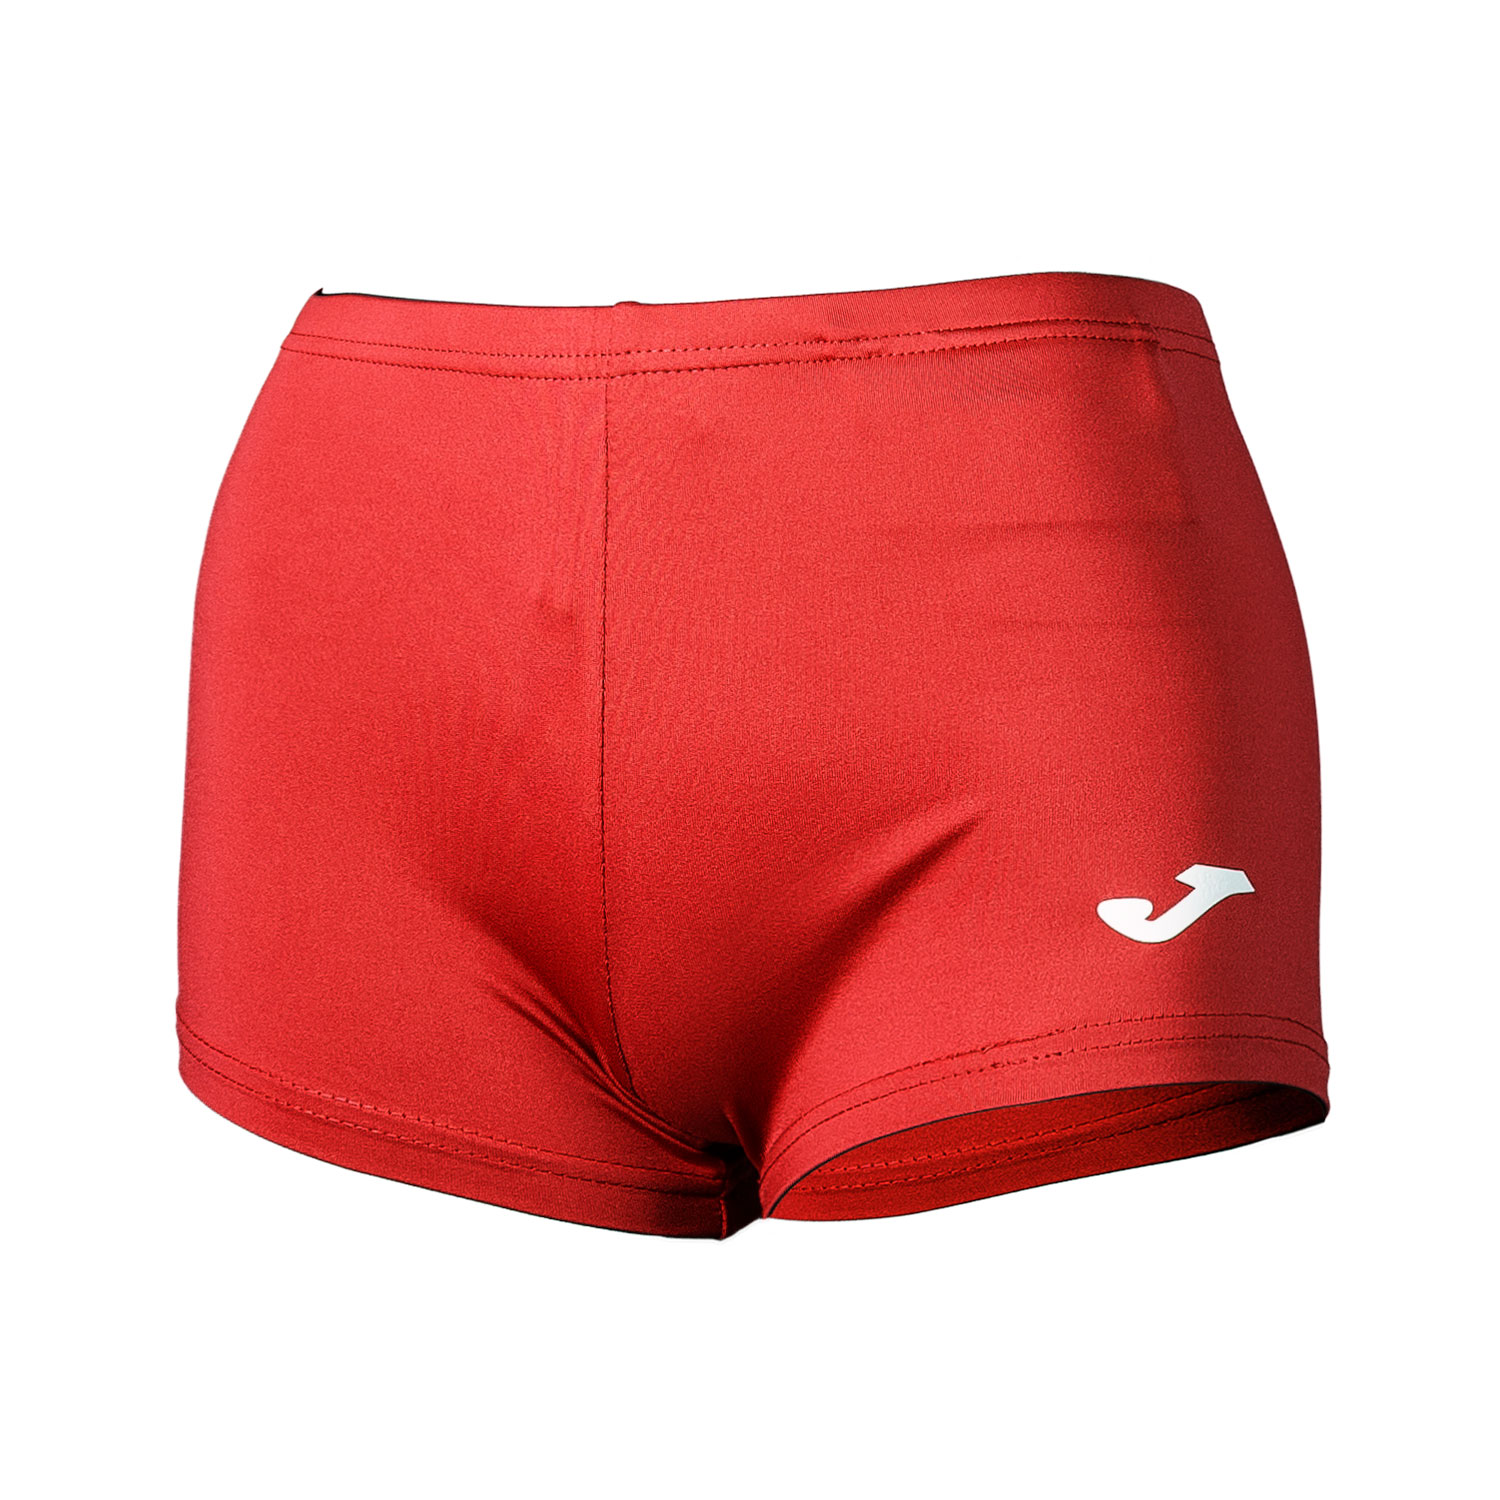 Joma Elastic 3in Shorts - Red